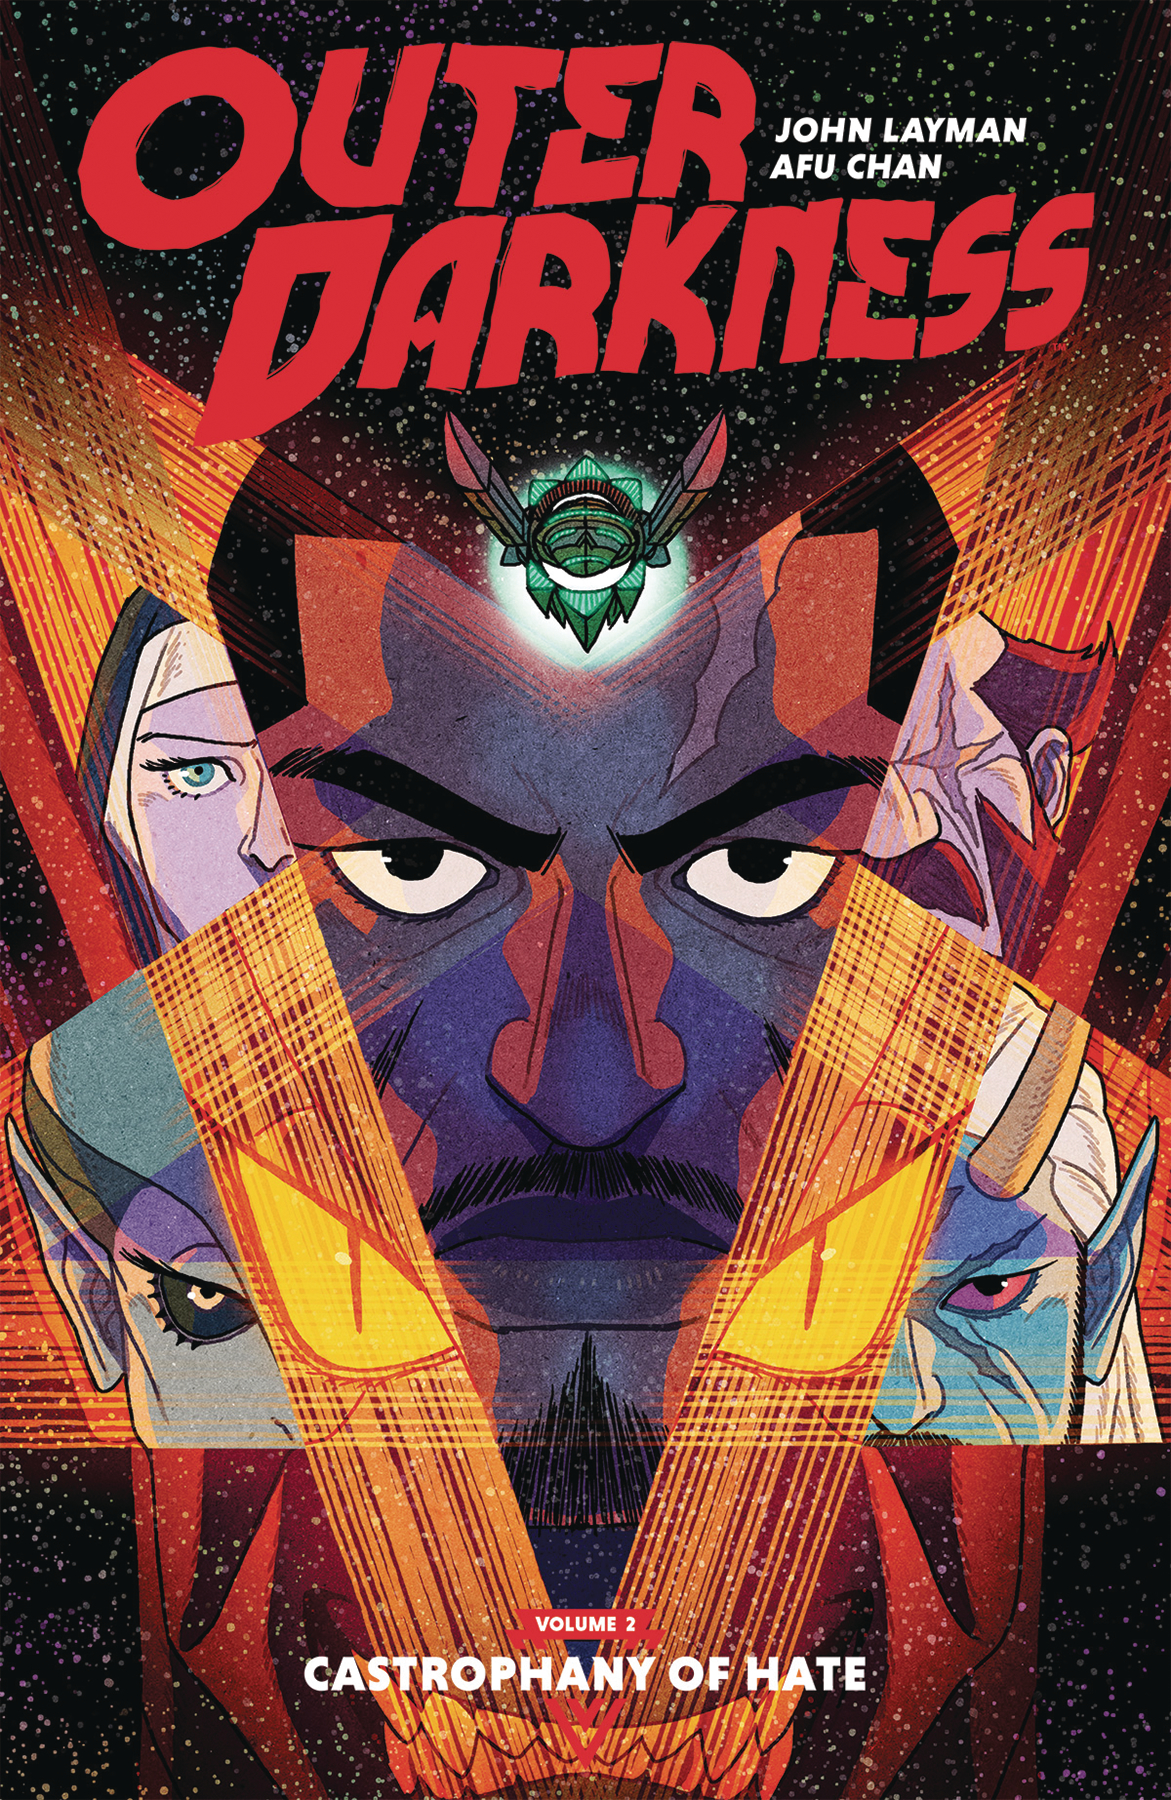 OUTER DARKNESS TP VOL 02 (OCT190115) (MR)